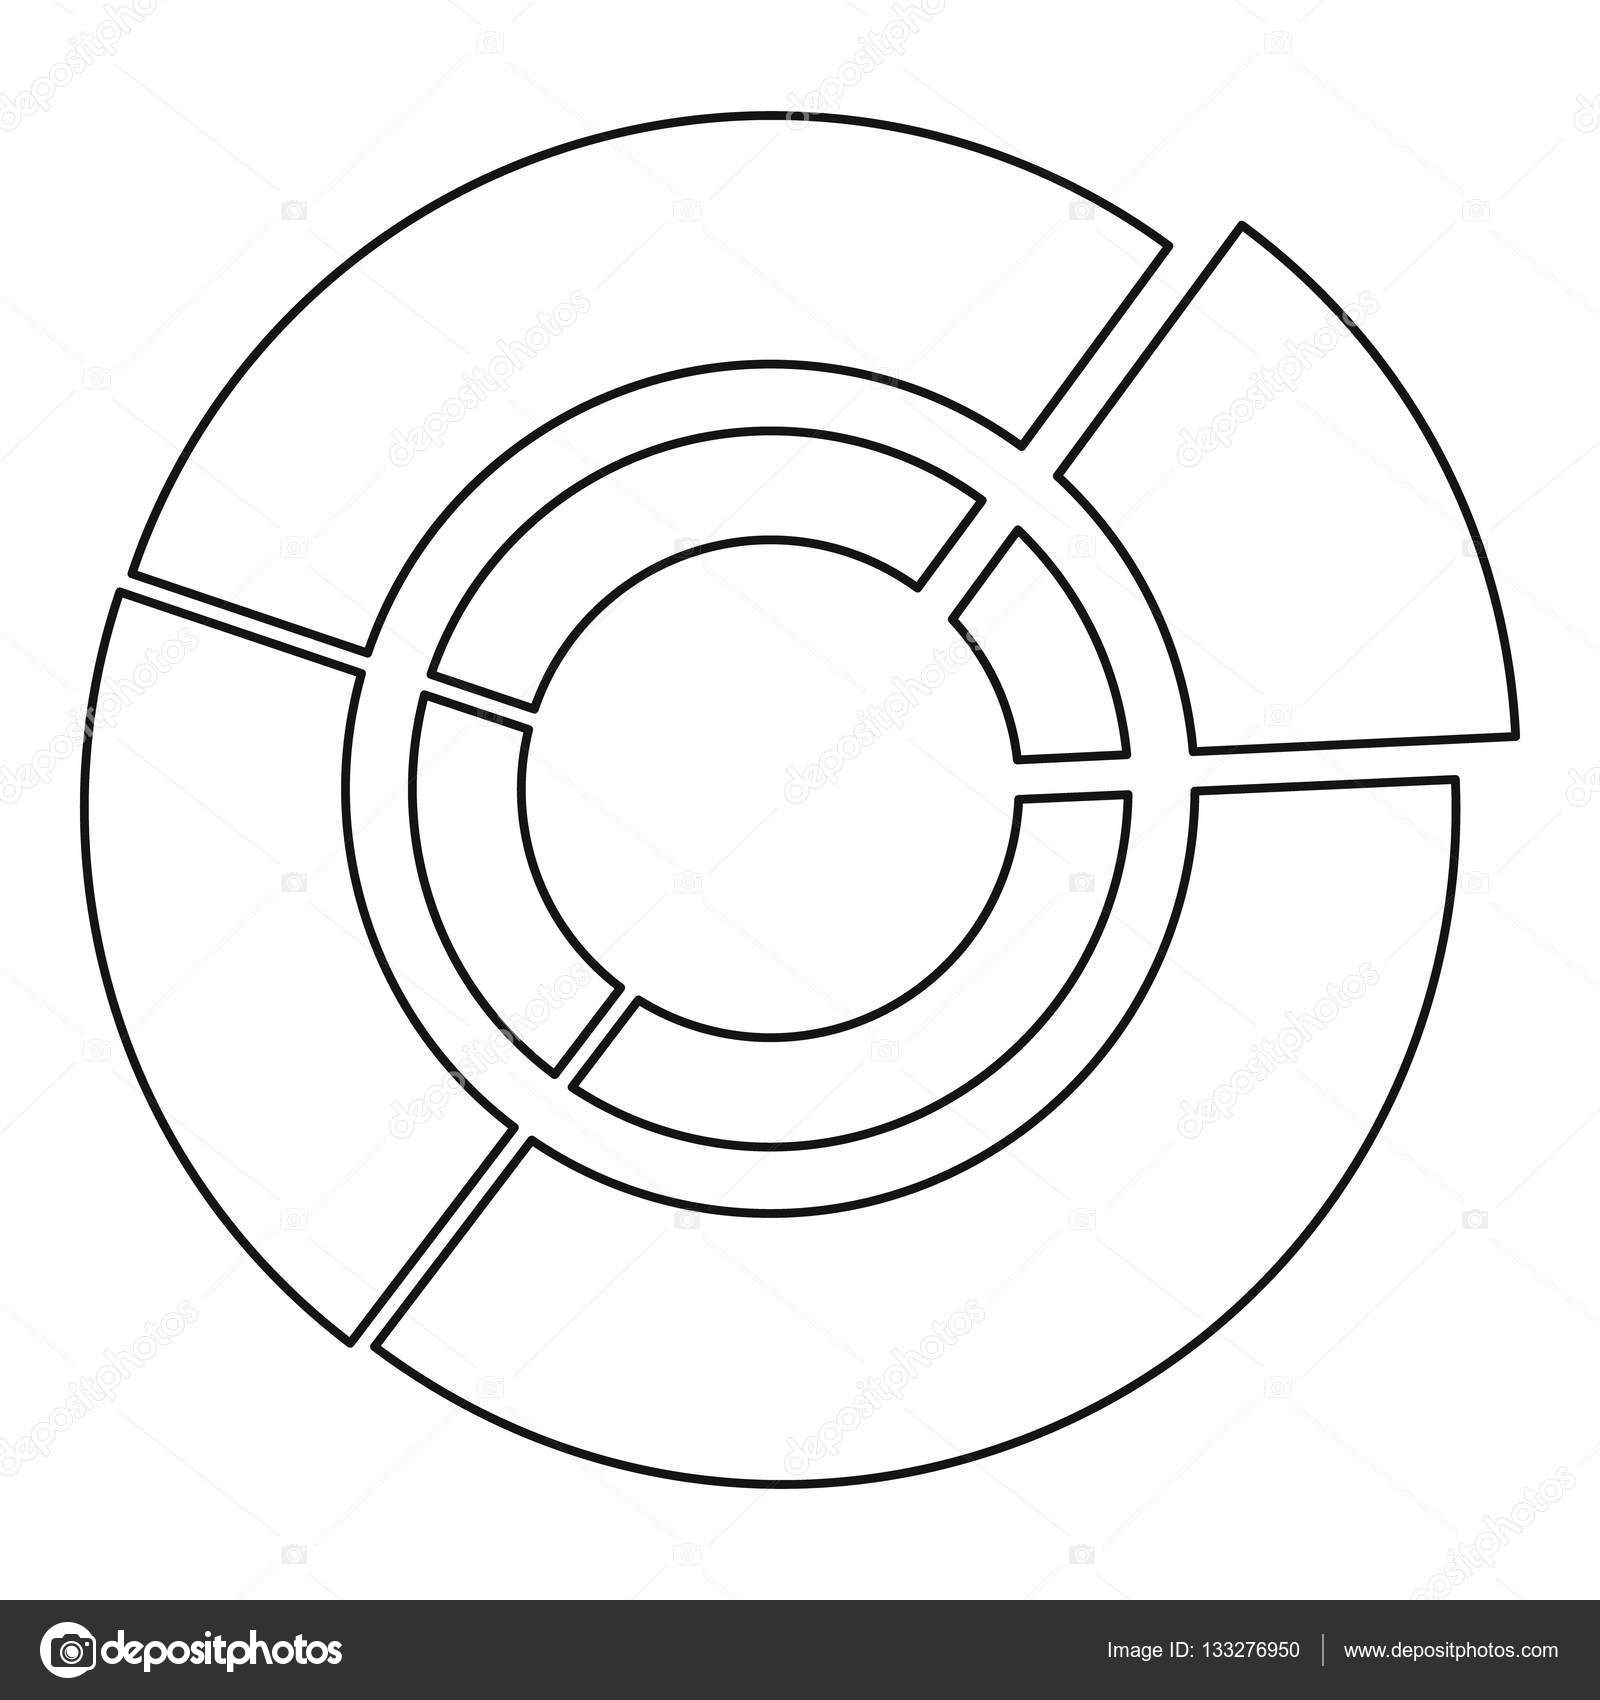 pie chart drawing at getdrawings com